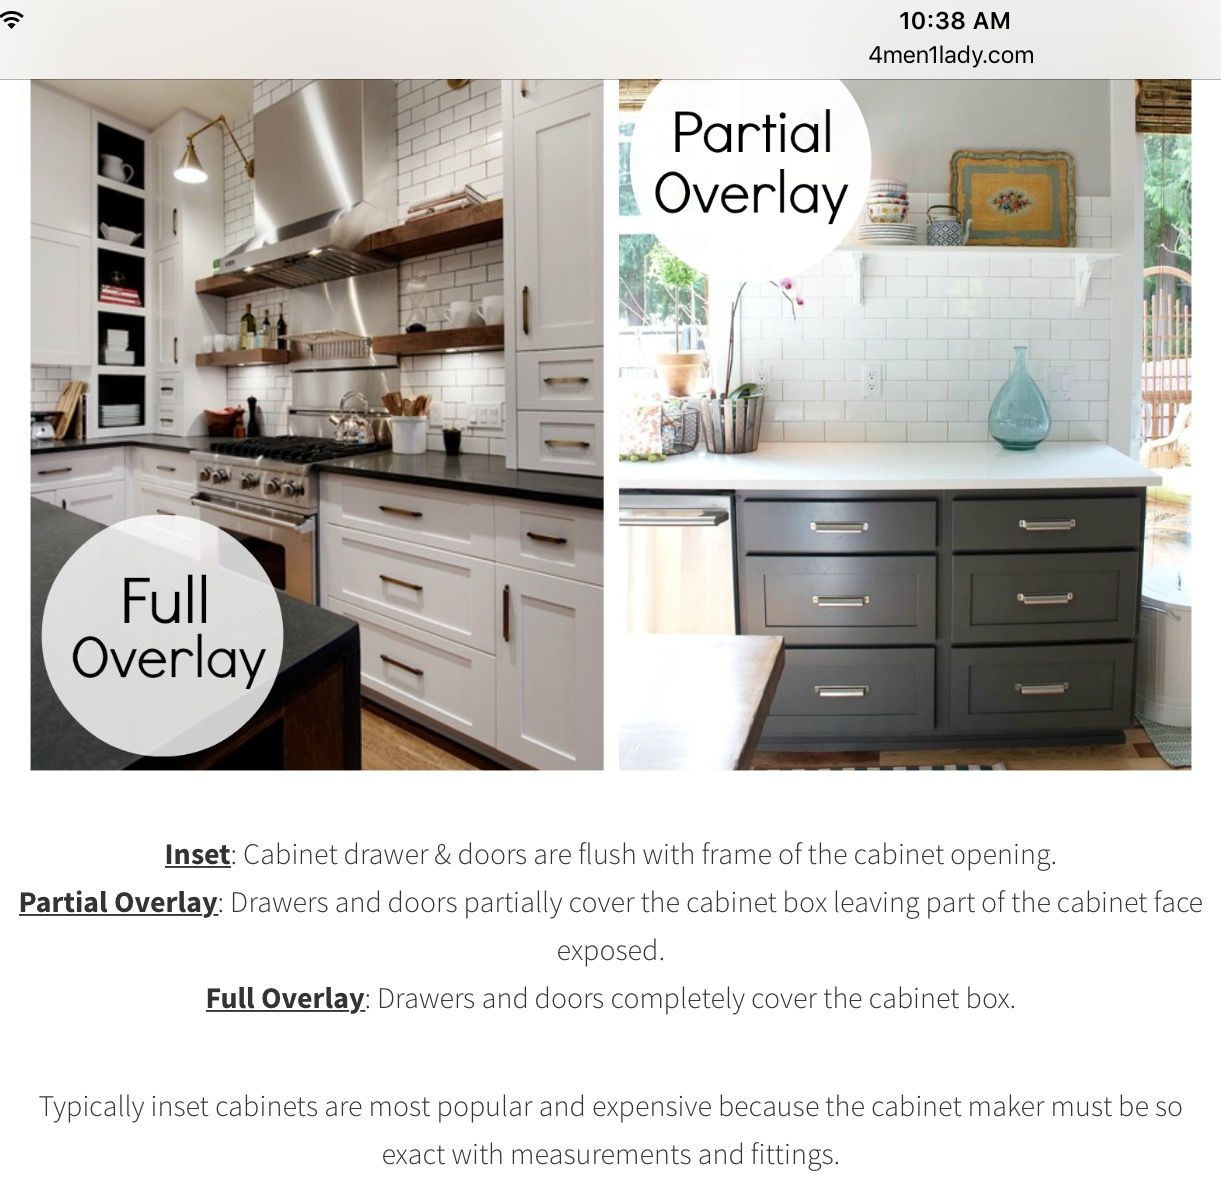 reviewing my own house kitchen cabinets 4 men 1 lady rh pinterest cl